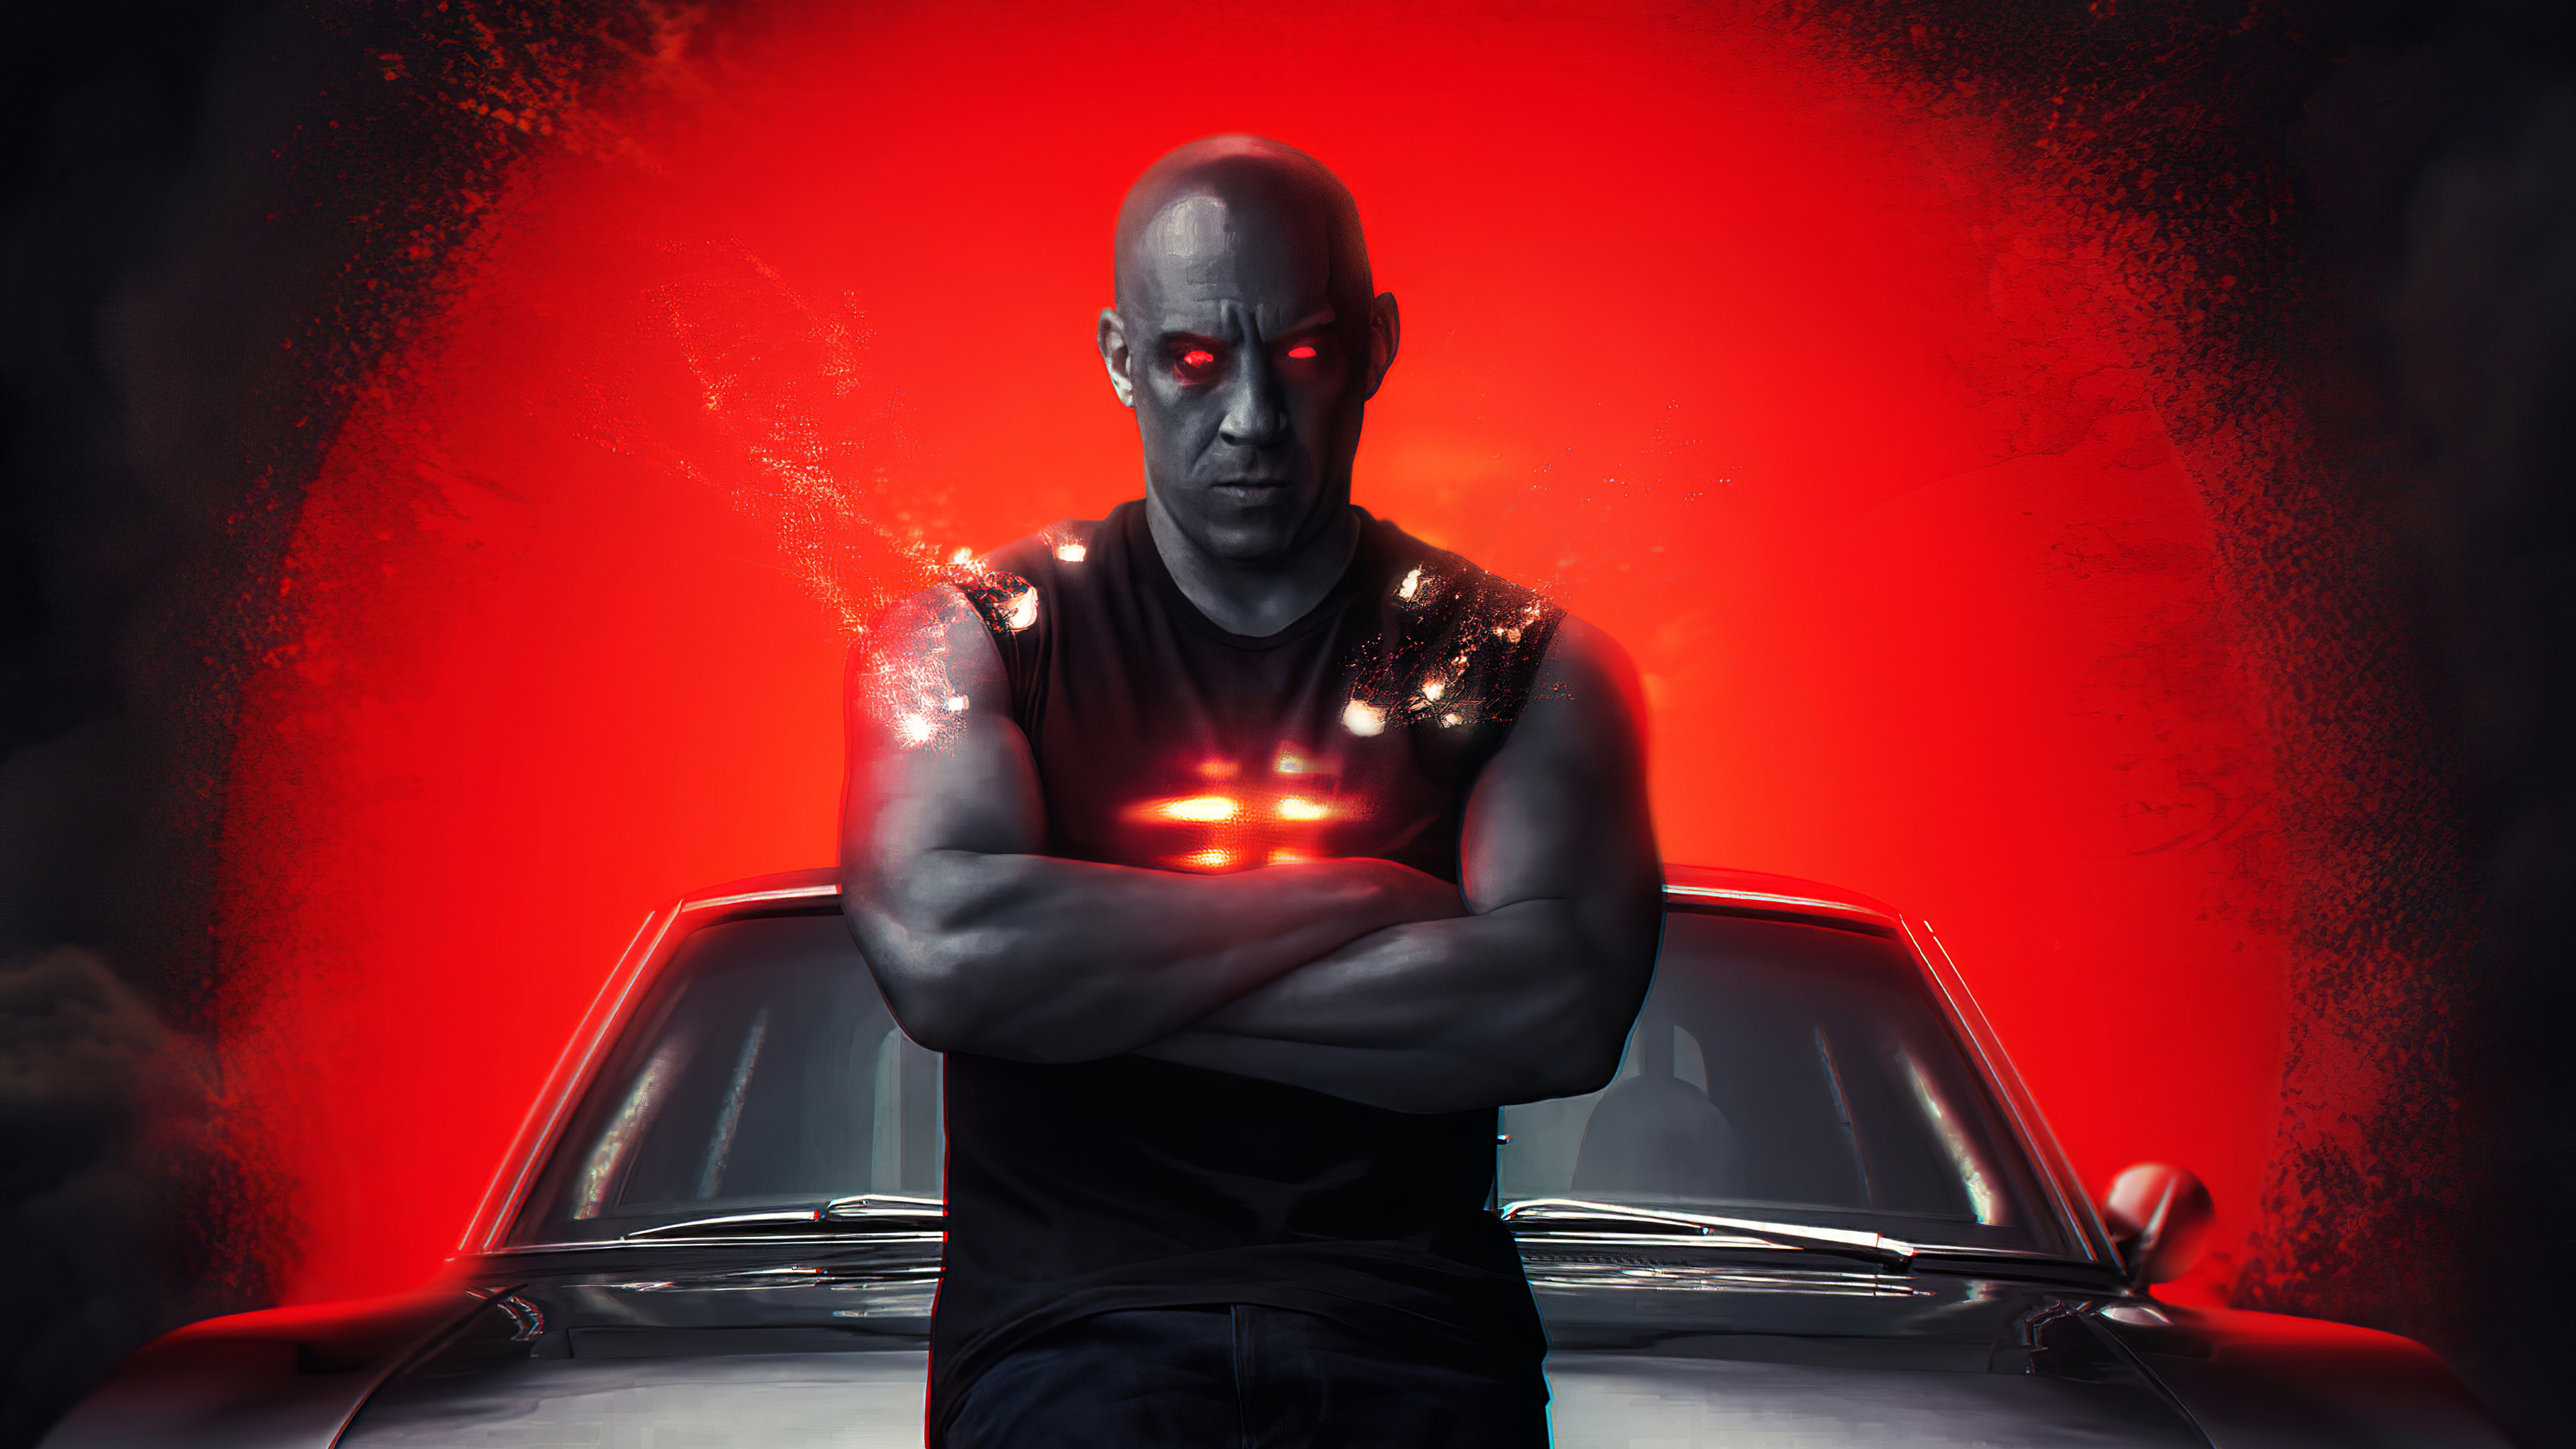 Wallpaper Vin Diesel from Fast and Furious